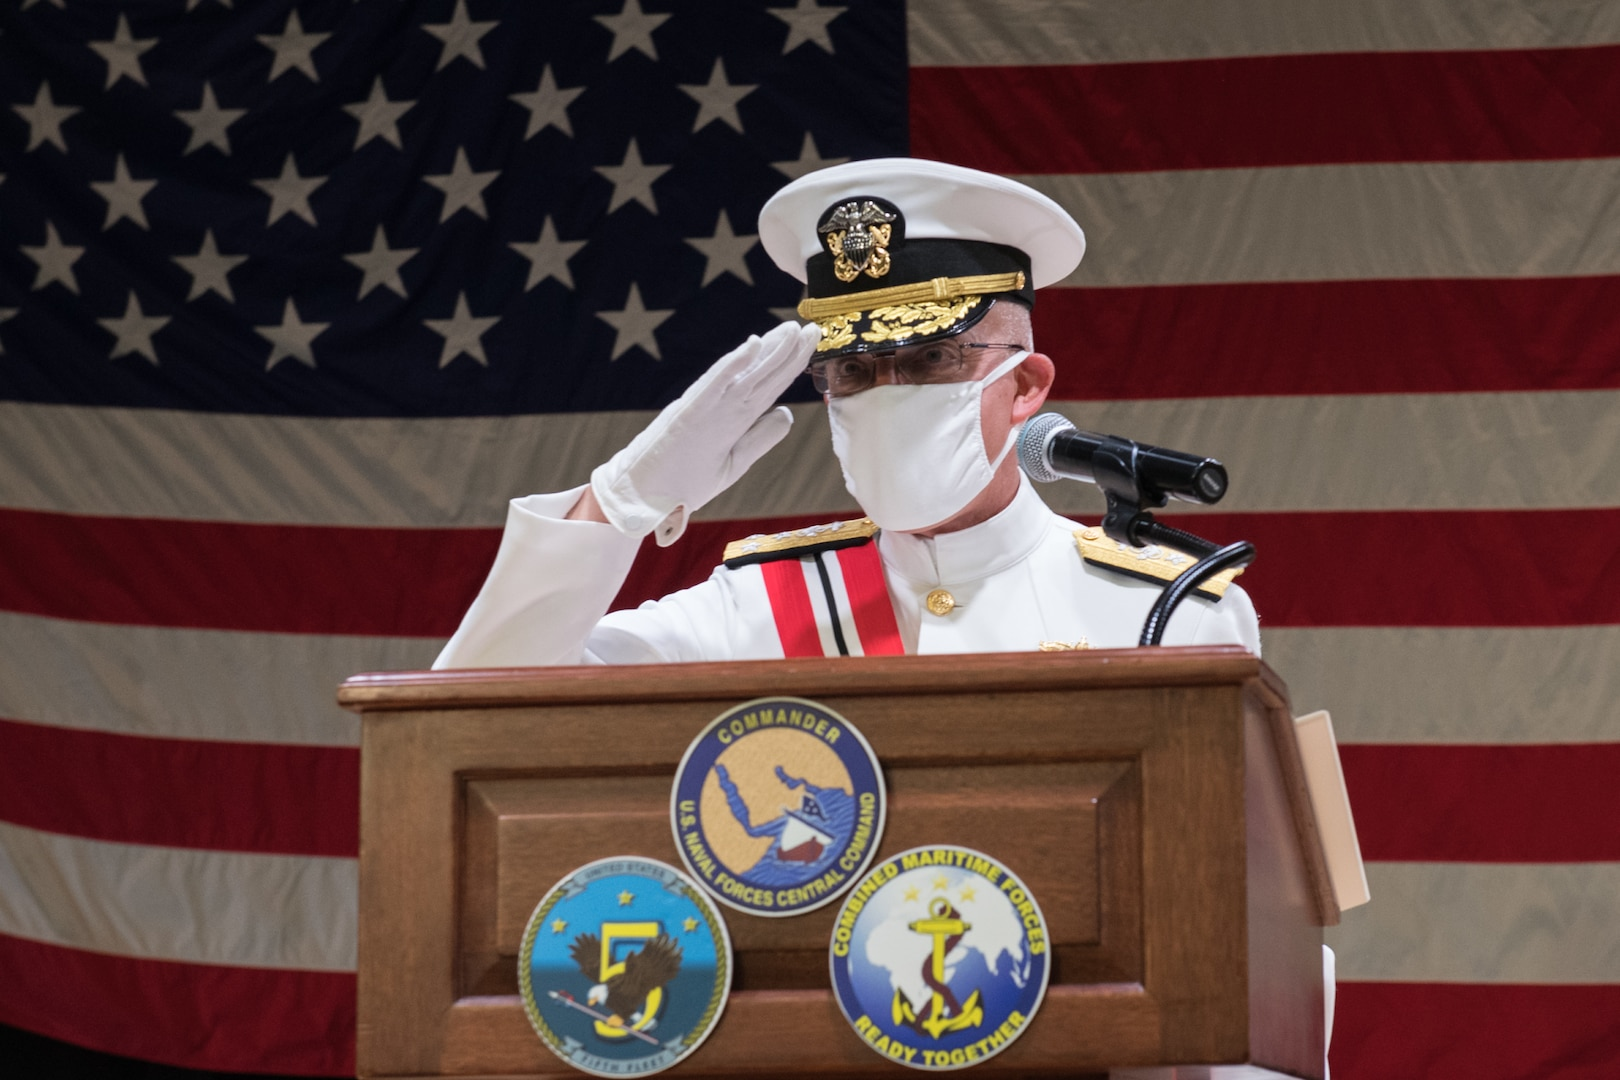 NAVAL SUPPORT ACTIVITY BAHRAIN (Aug. 19, 2020) Vice Adm. Jim Malloy, commander of U.S. Naval Forces Central Command (NAVCENT), U.S. 5th Fleet and Combined Maritime Forces (CMF) salutes as he is relieved of command by incoming commander Vice Adm. Sam Paparo during the hybrid change of command onboard Naval Support Activity Bahrain Aug. 19, 2020. NAVCENT is the U.S. Navy element of U.S. Central Command in the U.S. 5th Fleet area of operations and encompasses about 2.5 million square miles of water area and includes the Arabian Gulf, Gulf of Oman, Red Sea and parts of the Indian Ocean. The expanse is comprised of 20 countries and includes three critical choke points at the Strait of Hormuz, the Suez Canal and the Strait of Bab al Mandeb at the southern tip of Yemen. (U.S. Navy photo by Mass Communication Specialist 3rd Class Dawson Roth)